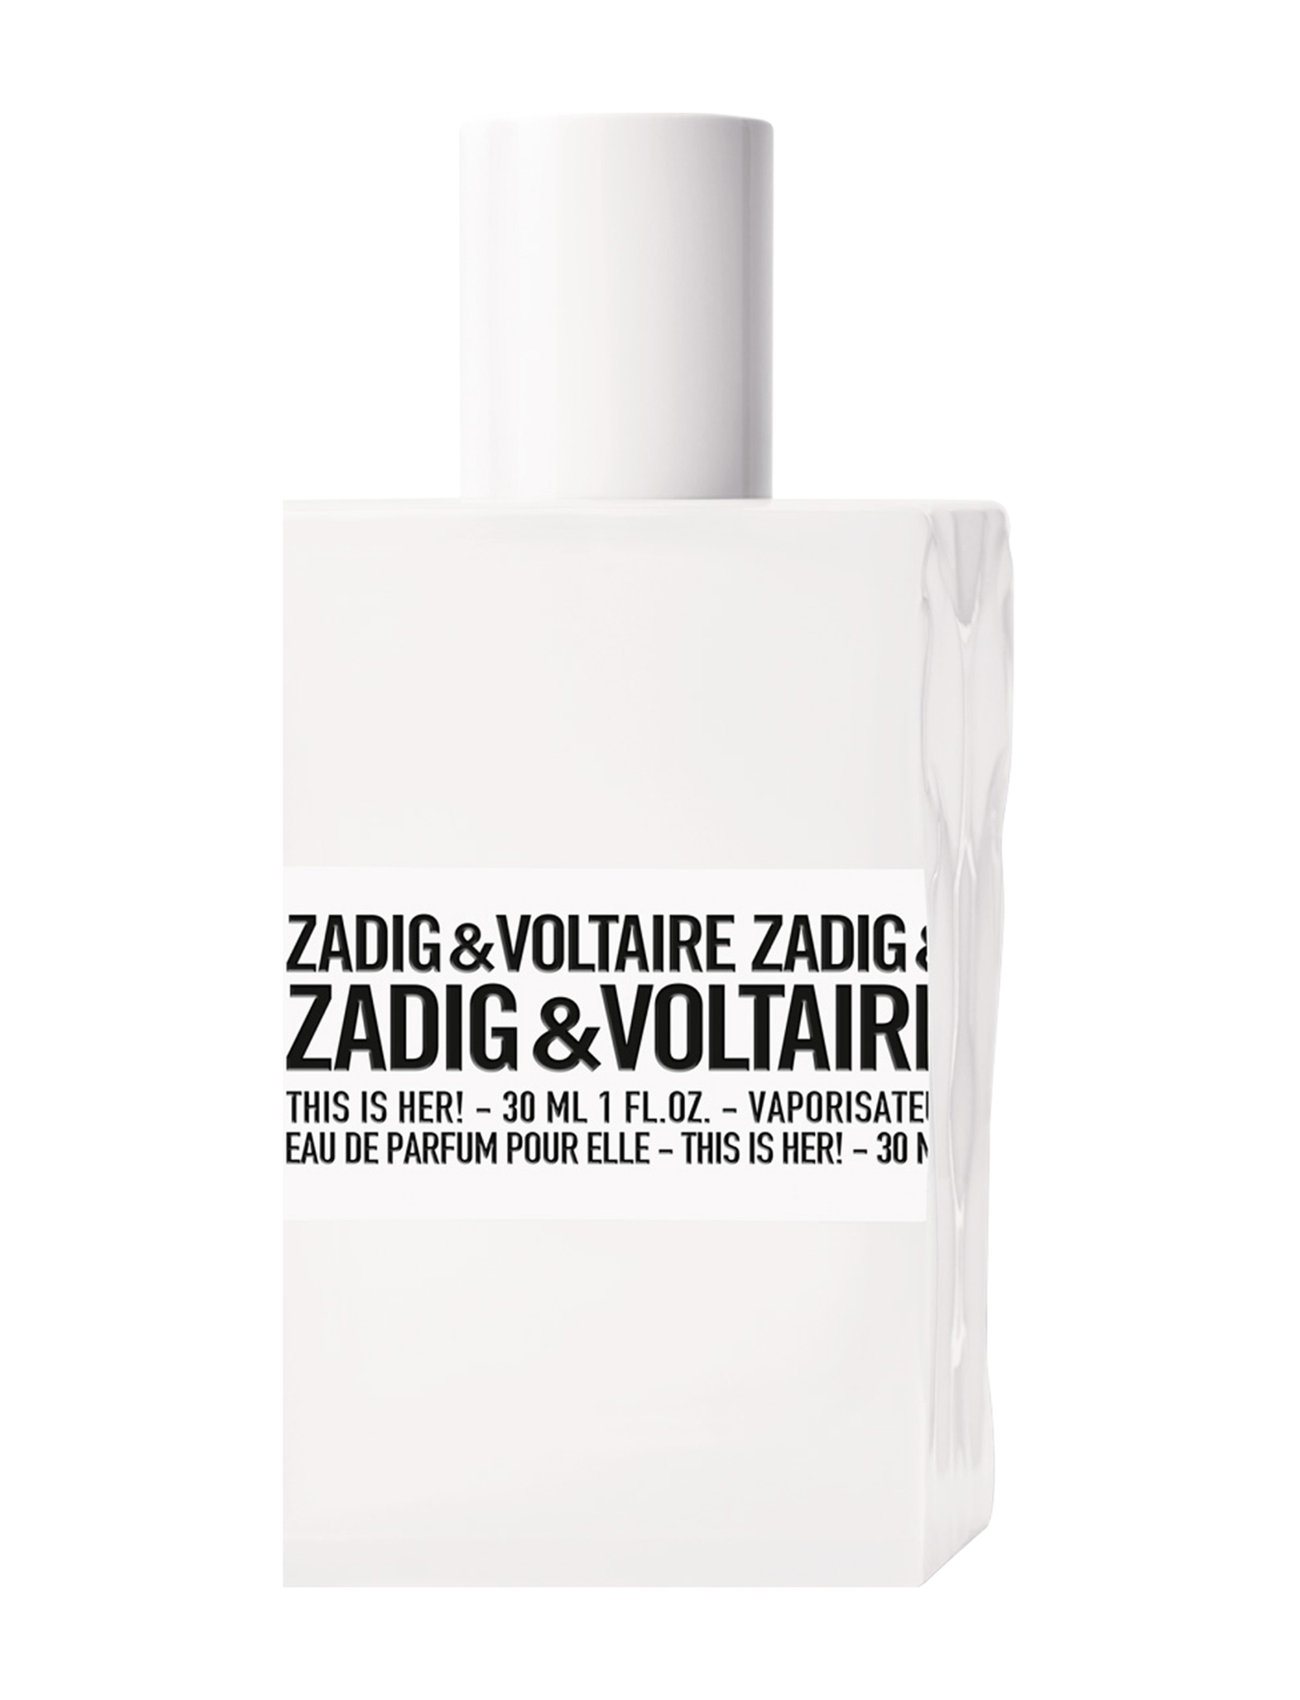 zadig & voltaire fragrance Zadig & voltaire this is her! eau d fra boozt.com dk